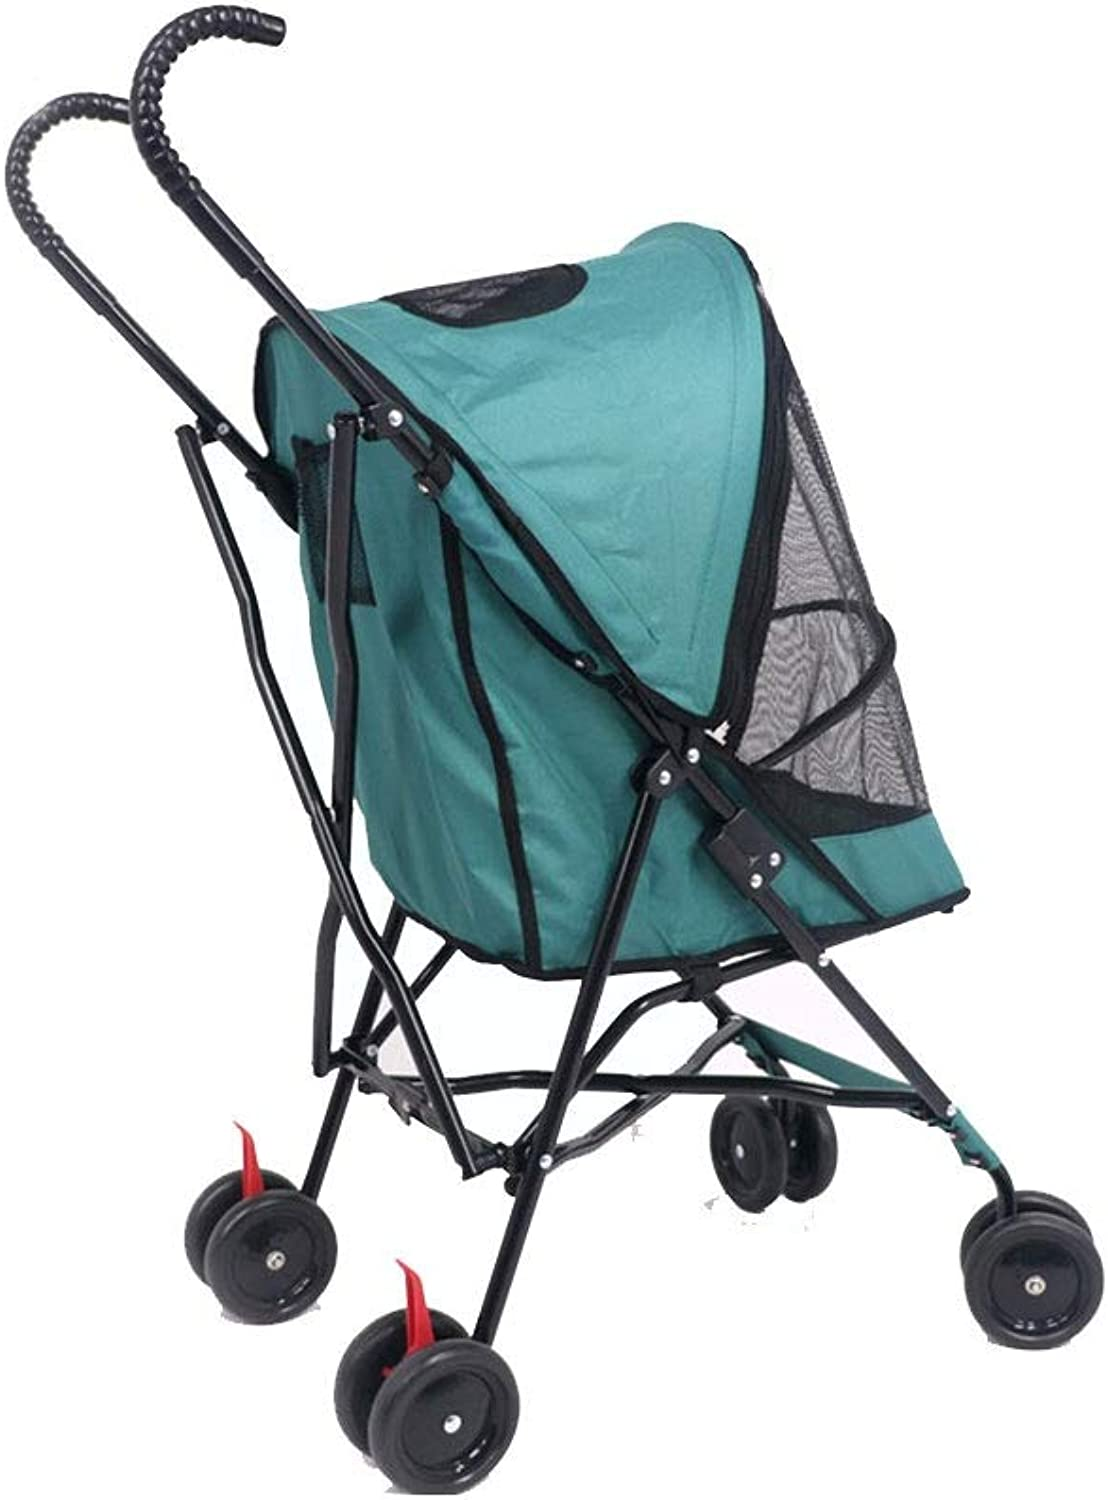 Lihuaa Pet Car Trolley Small Dog Teddy Bomei Puppy Cart Four Wheel Free Inssizetion Cat Cart (color   Green)